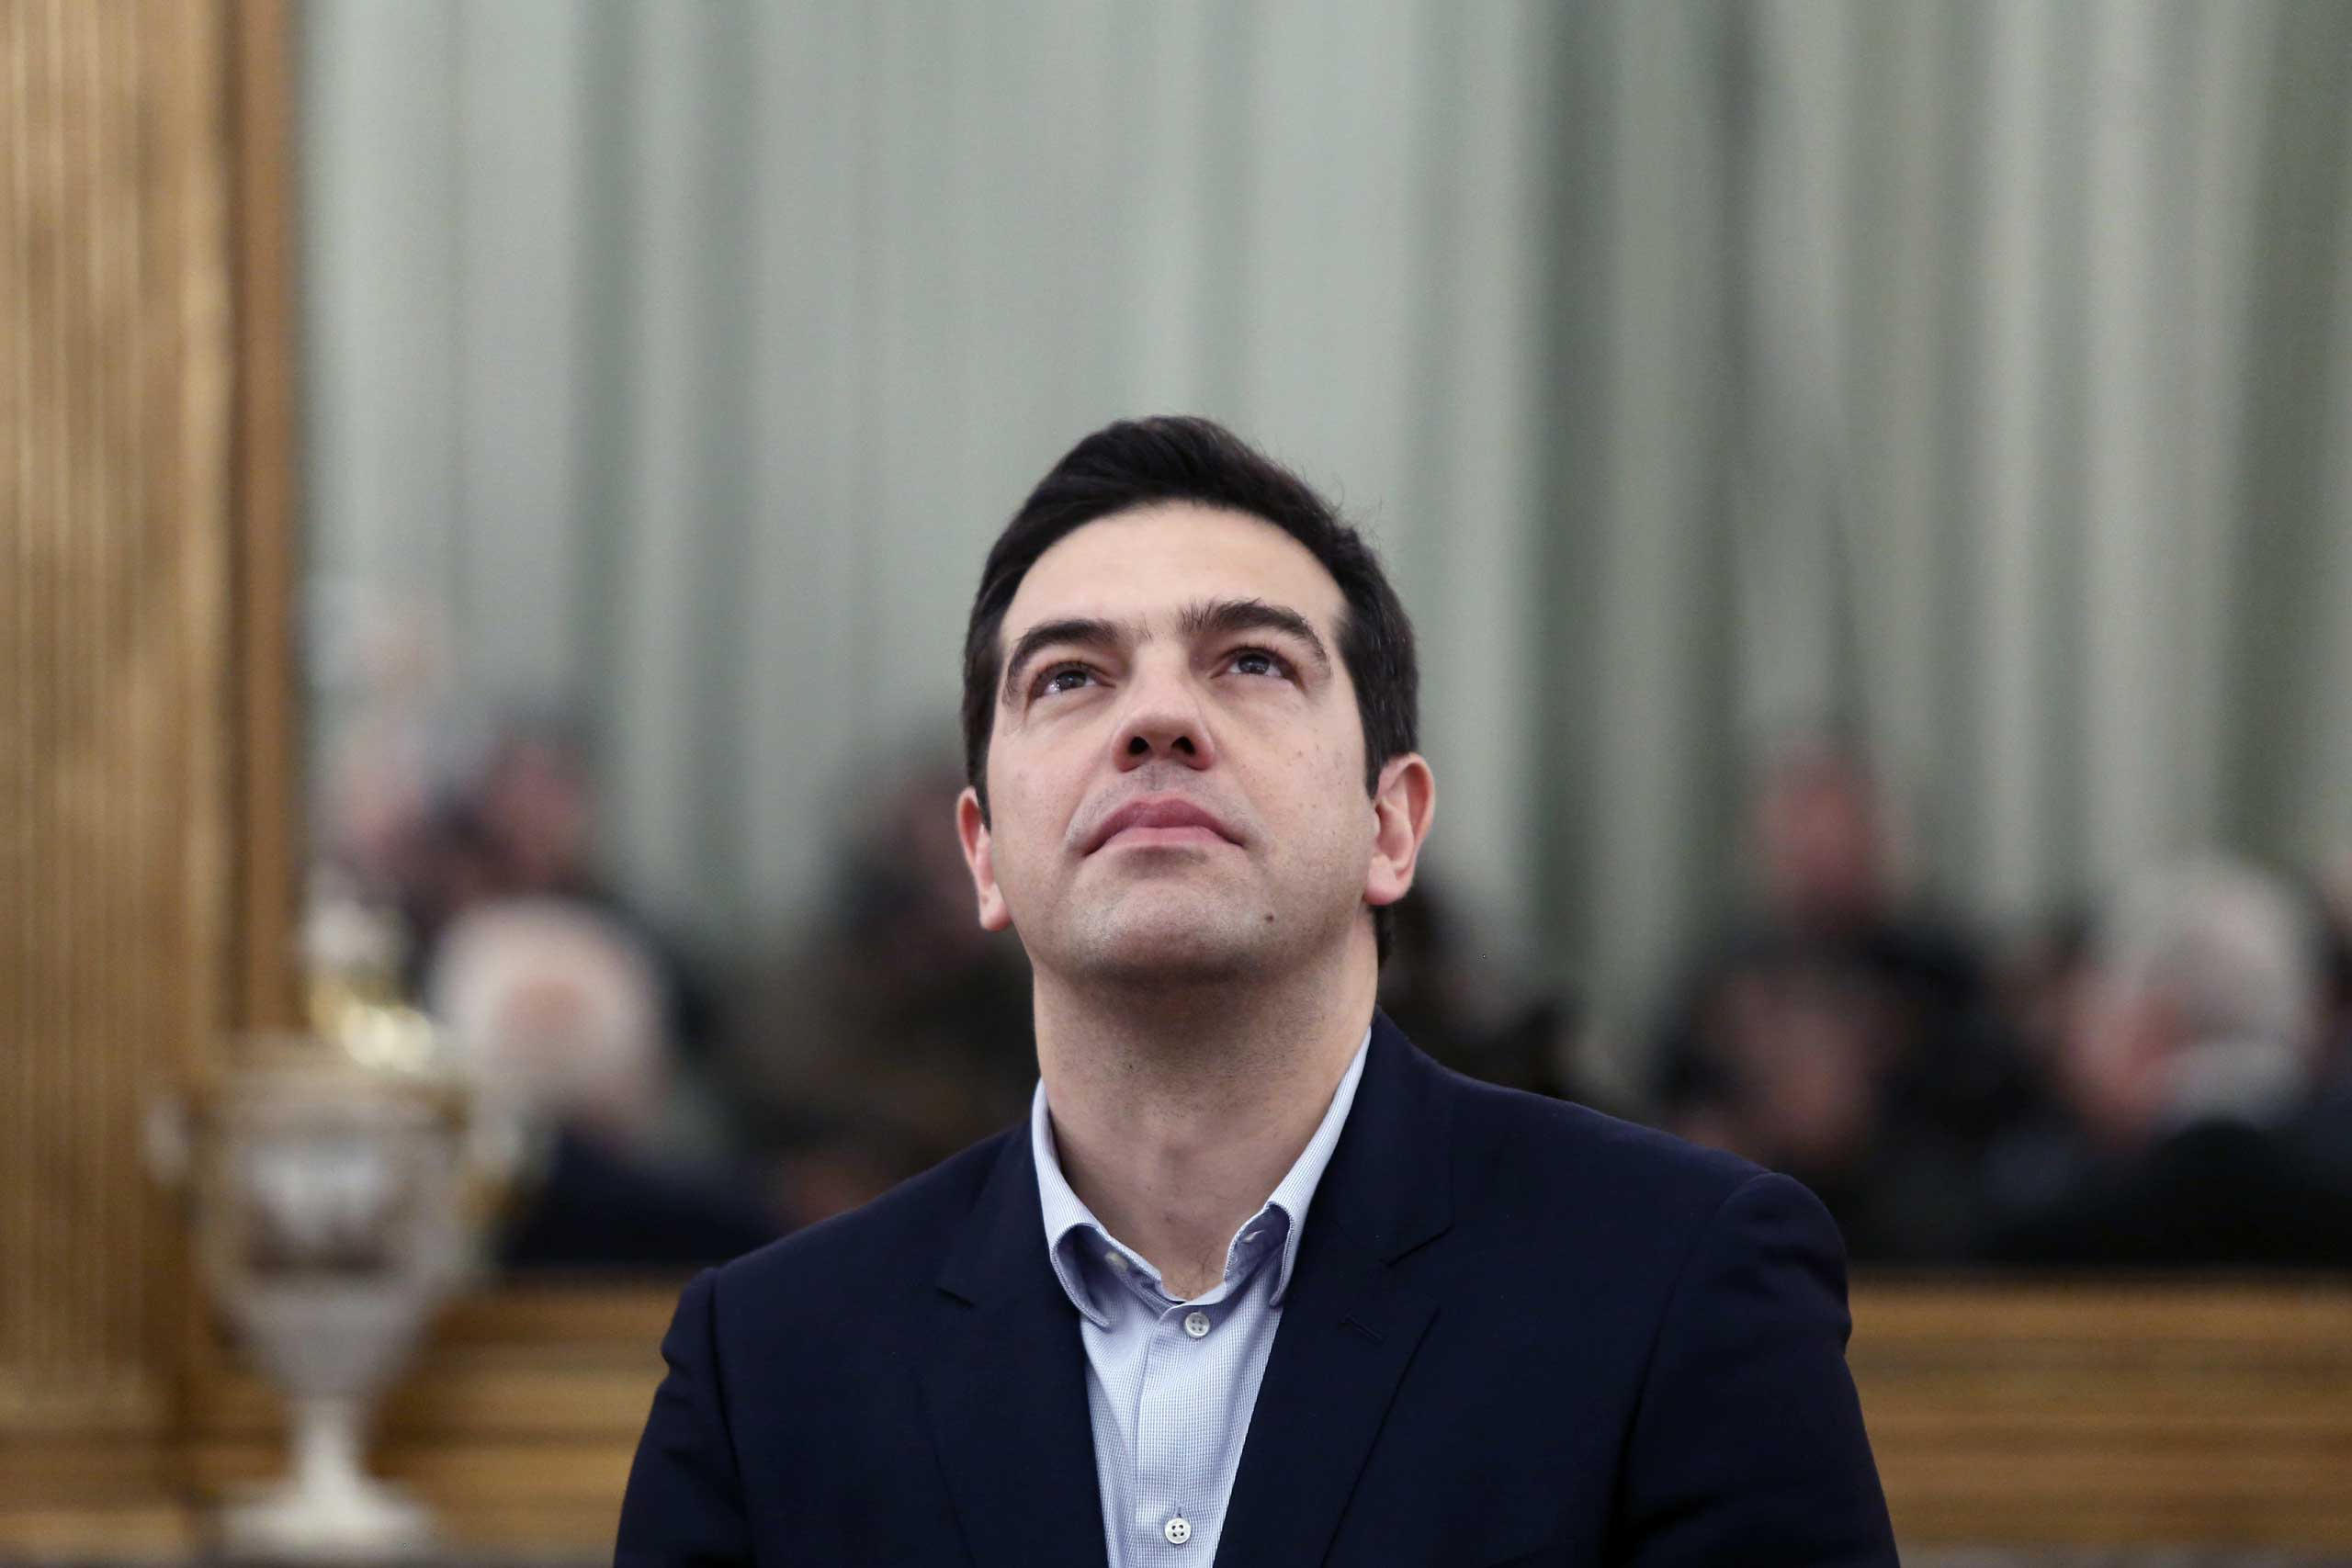 Greek Prime Minister and Syriza party leader Alexis Tsipras, at the Presidential palace during the swearing in ceremony of the new Greek Government, Athens, Jan. 27, 2015 .